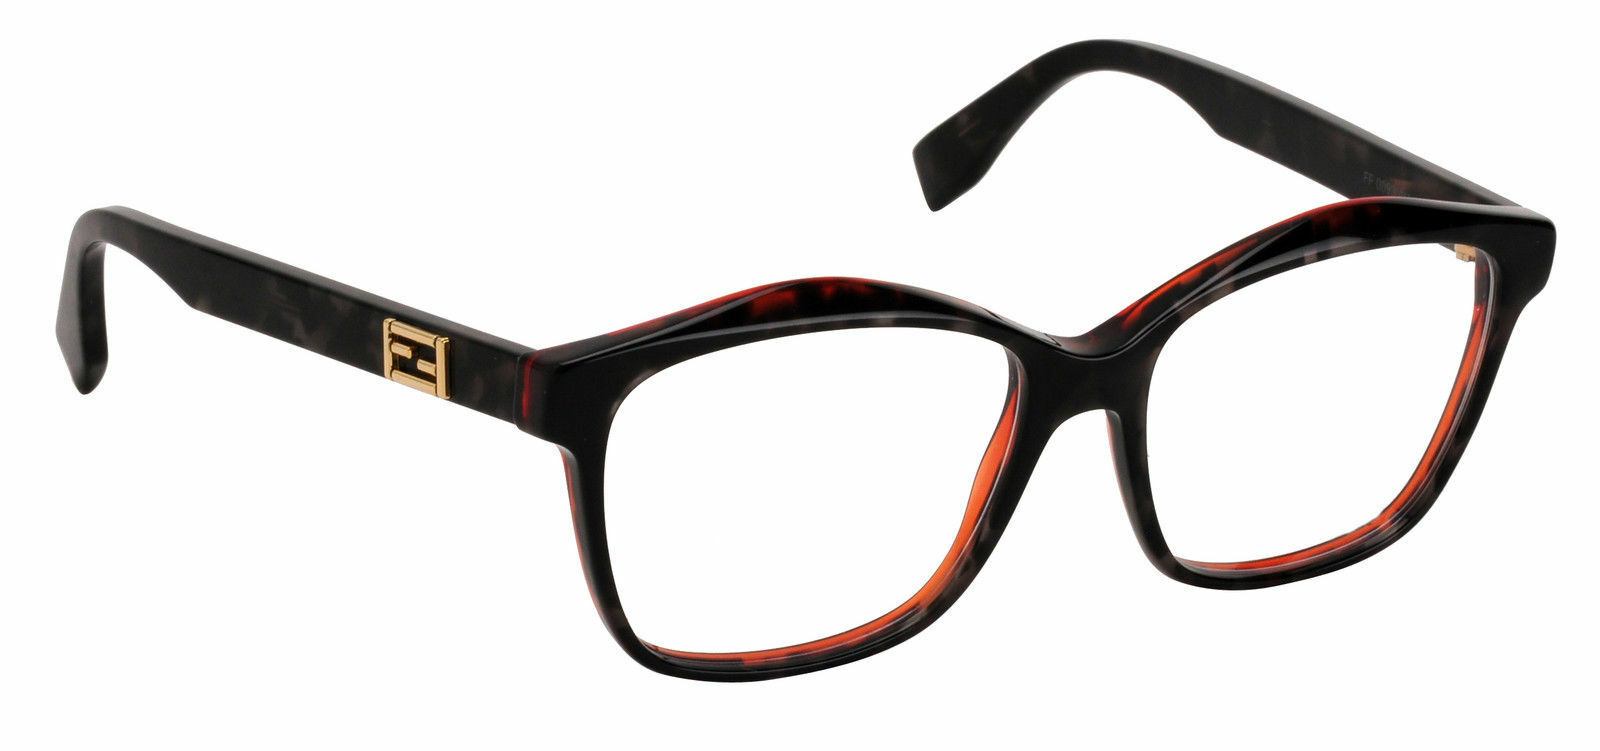 Fendi Eyeglasses FF 0093 D5t Frame Authentic 54mm Gray Spotted ...